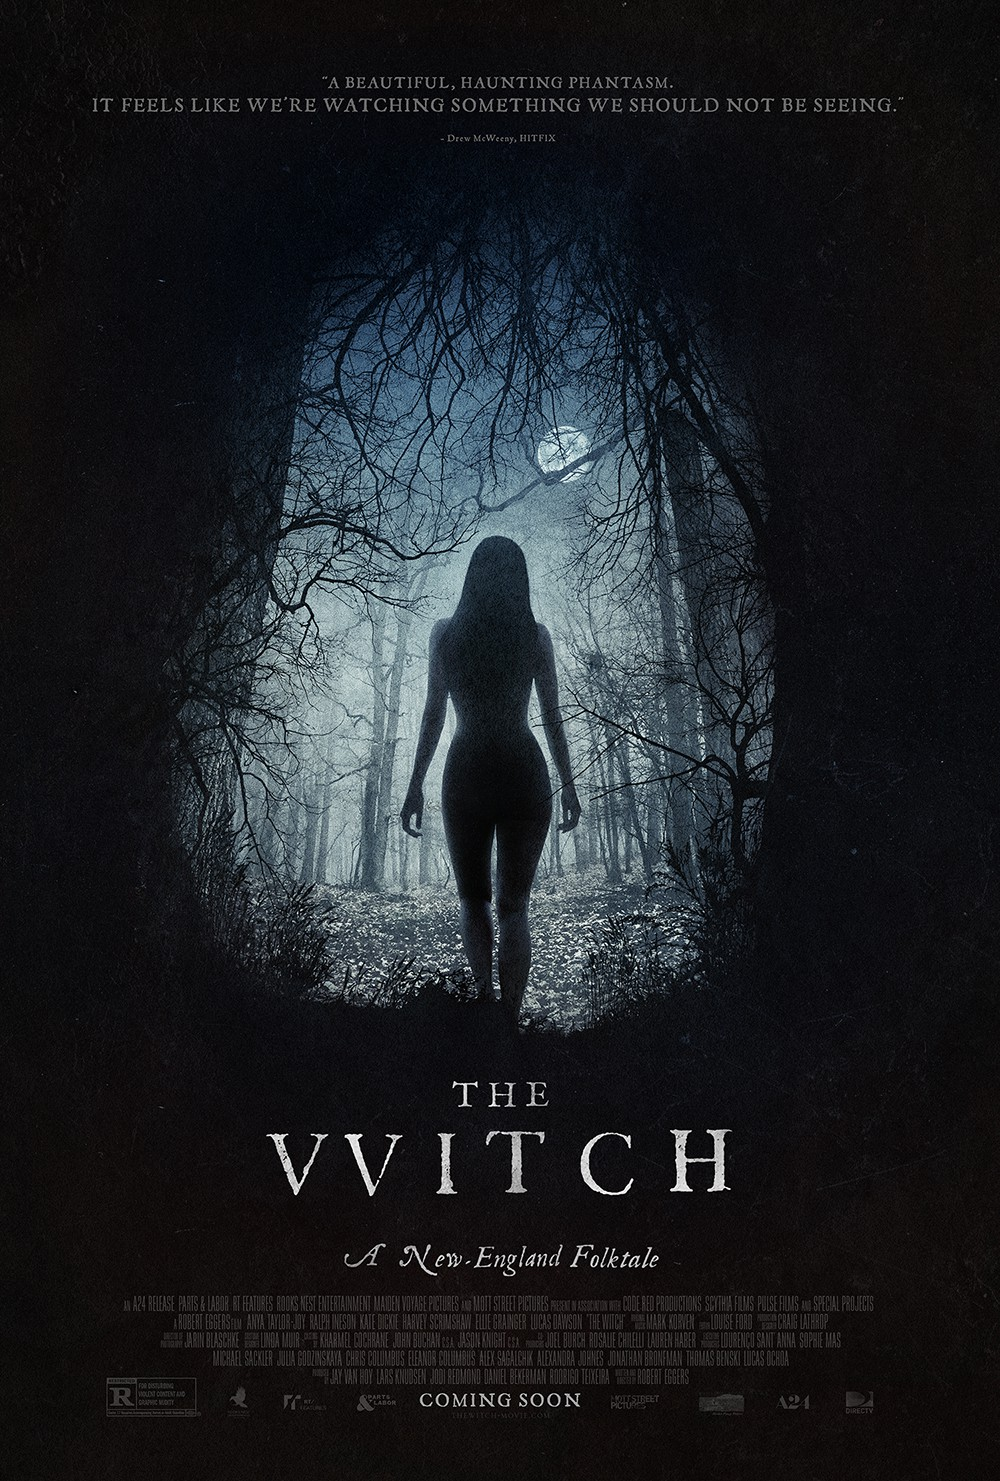 Assista ao macabro novo trailer de A Bruxa - The Witch new trailer